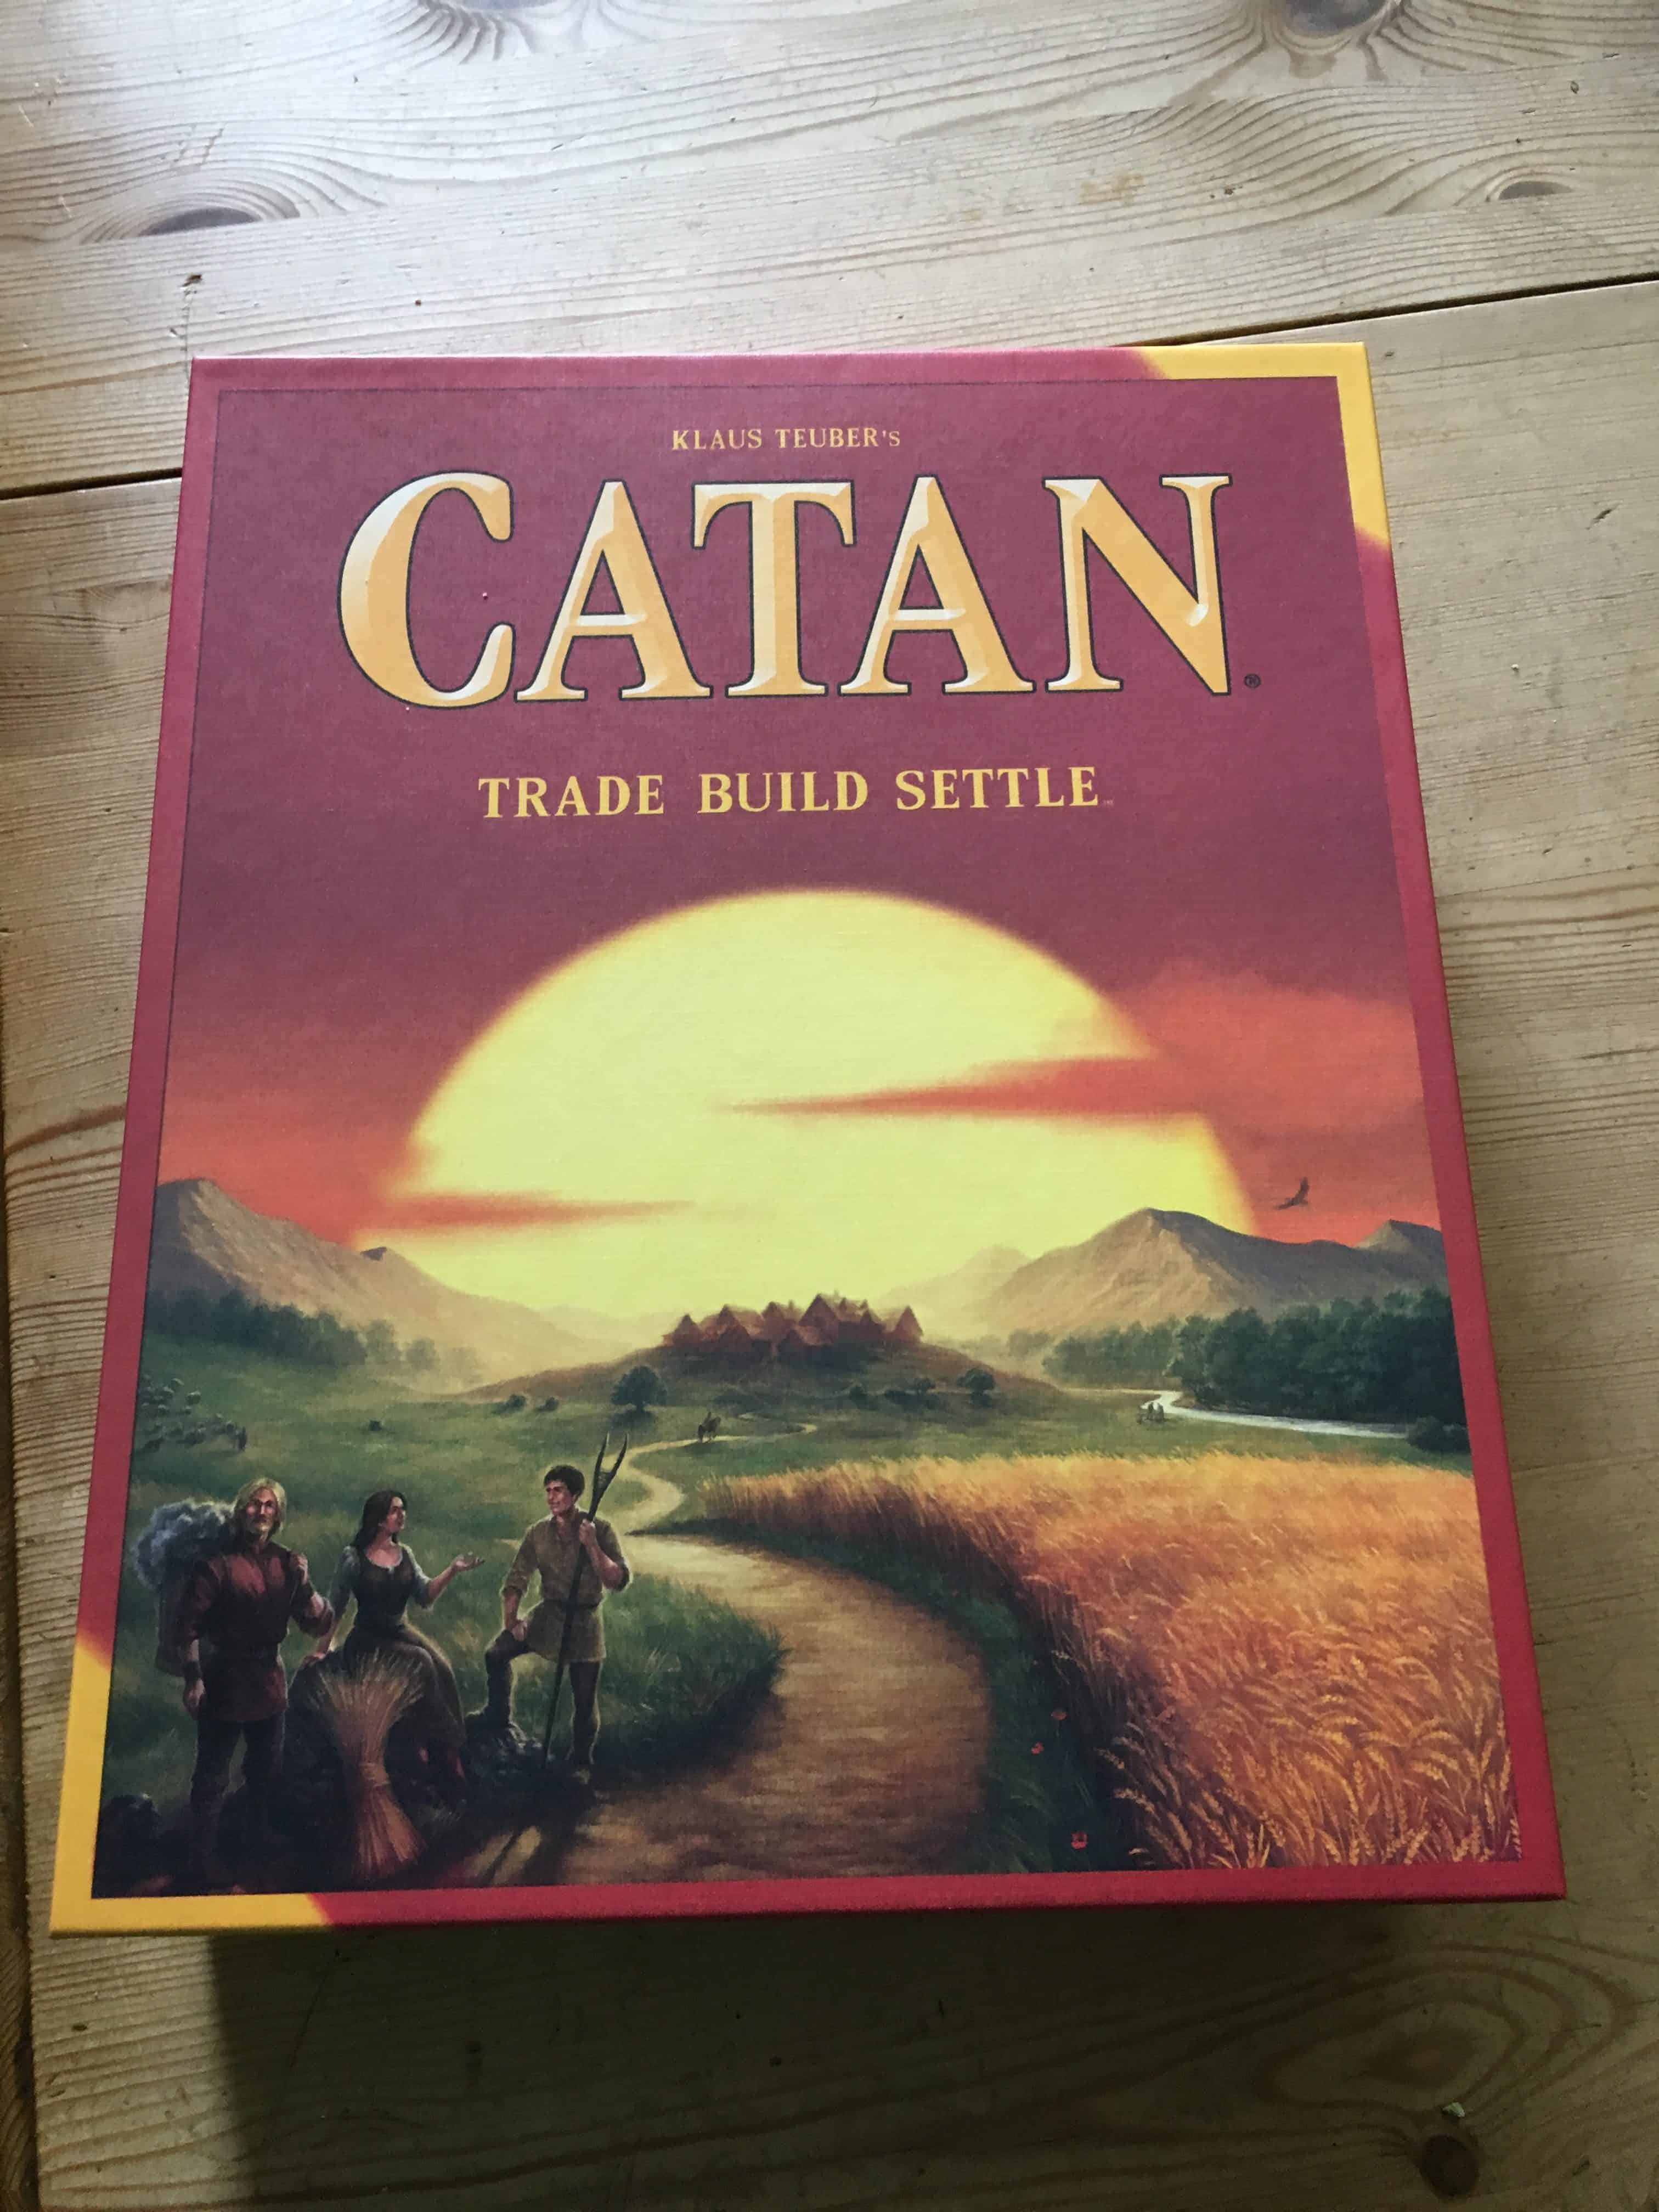 Board Game Club: Review of Catan